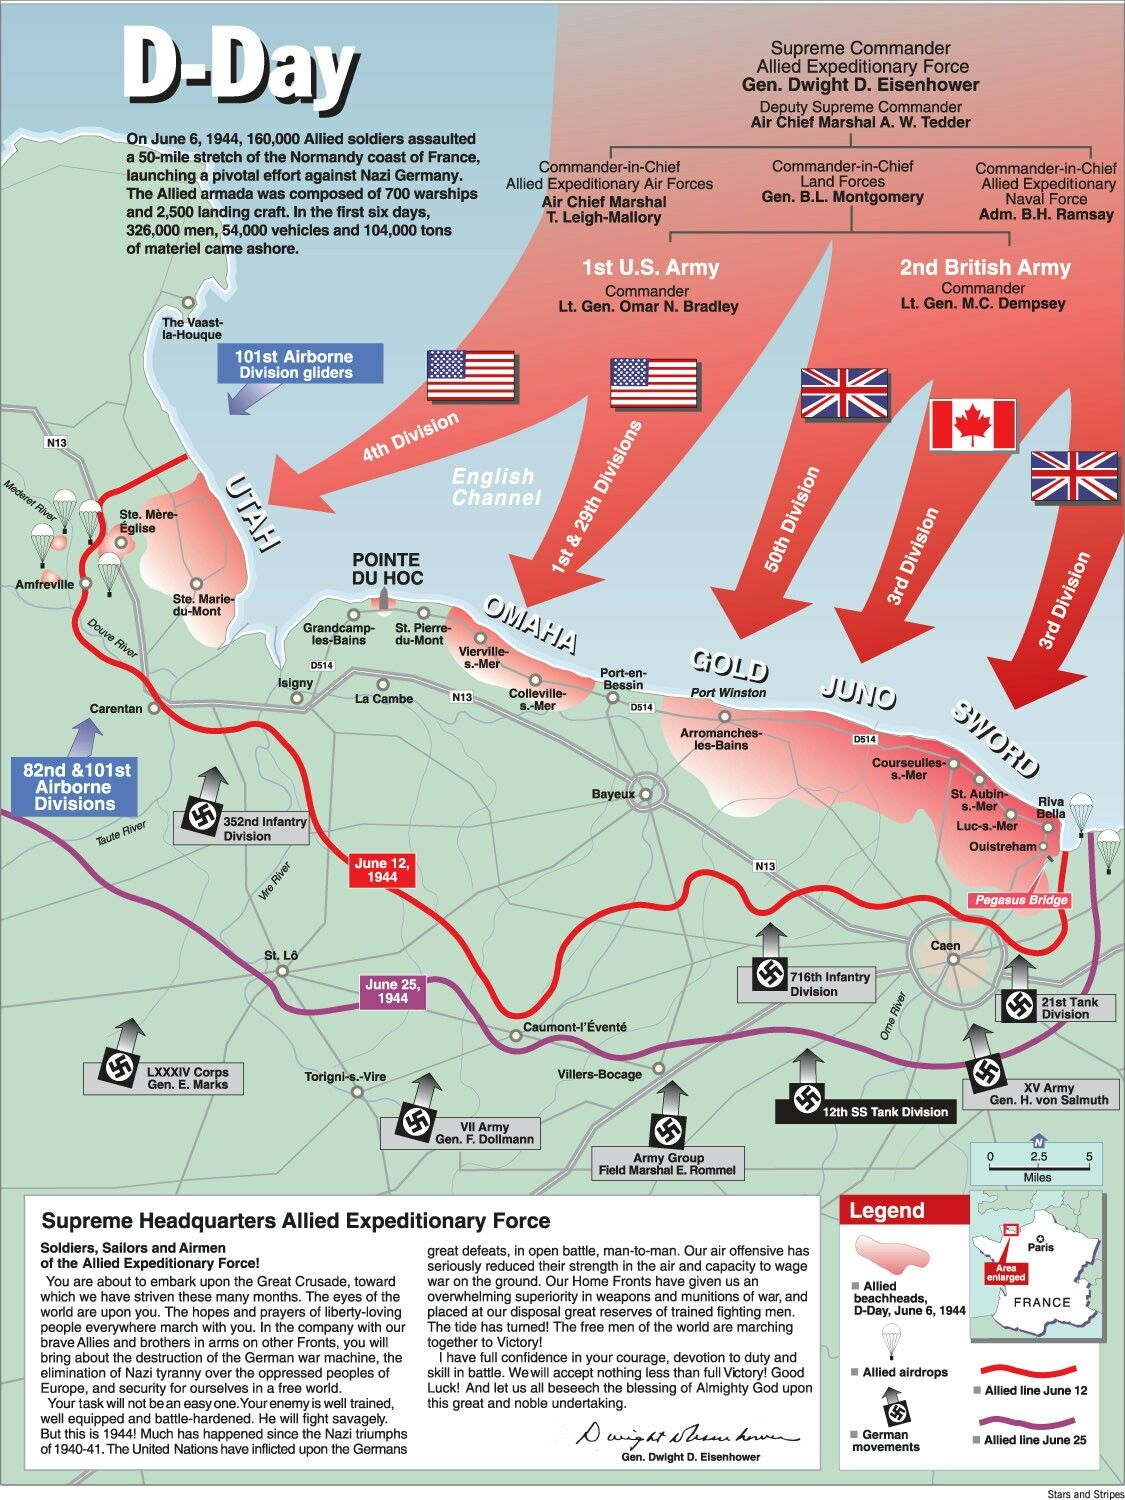 Pin By Radialv On Battle And War Diagrams Wwii History Military